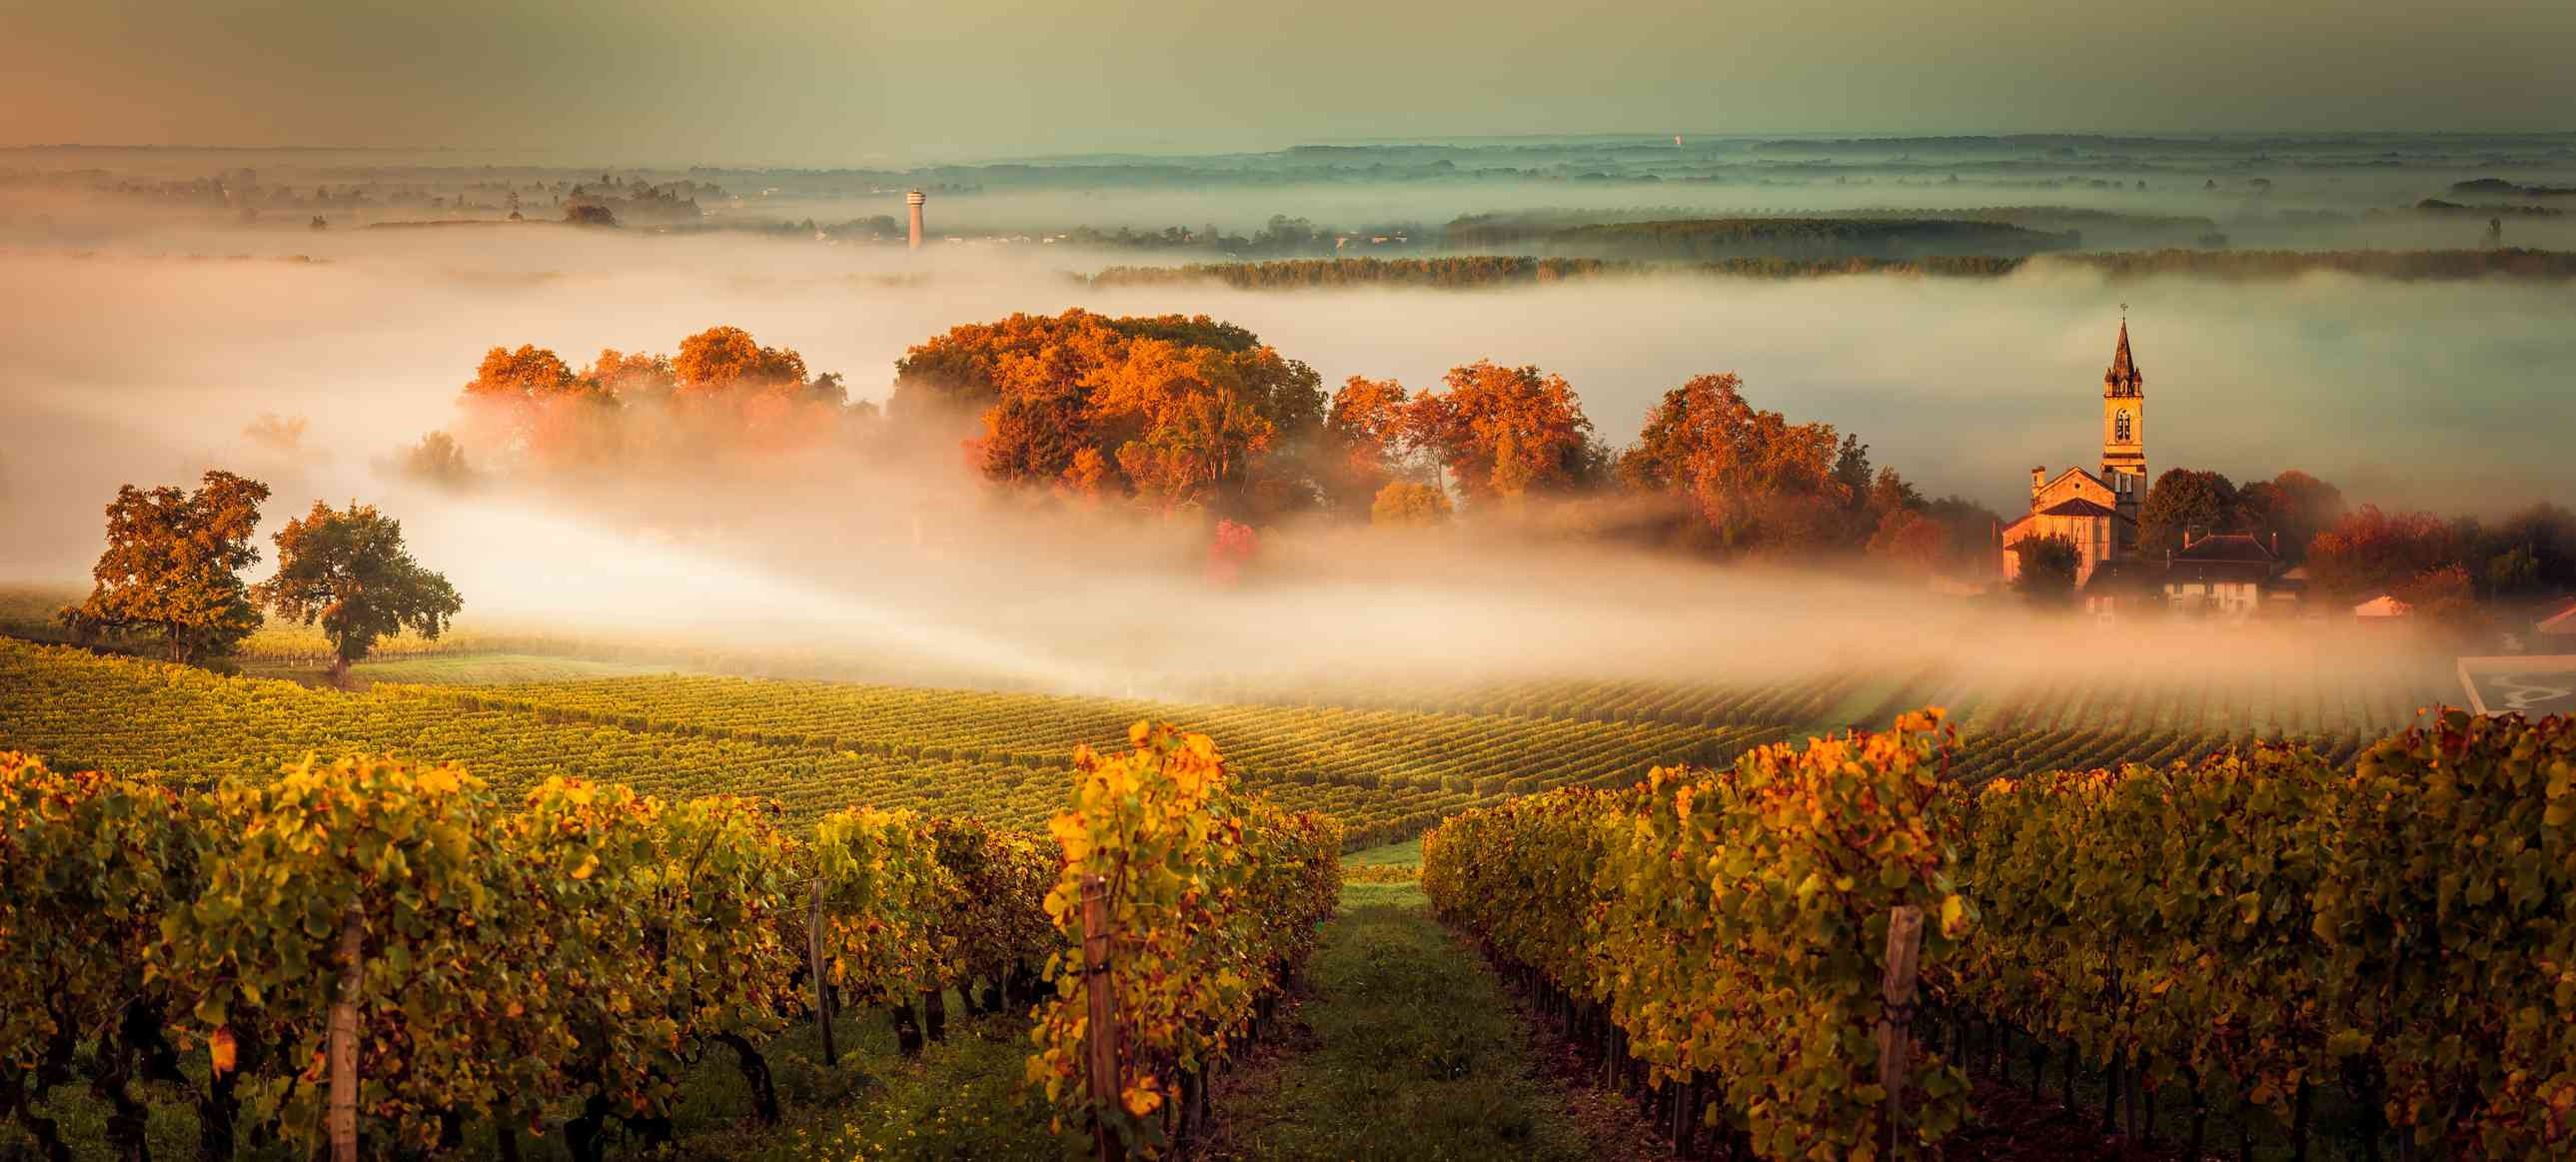 10 Best Wine Regions In France That You Must Visit